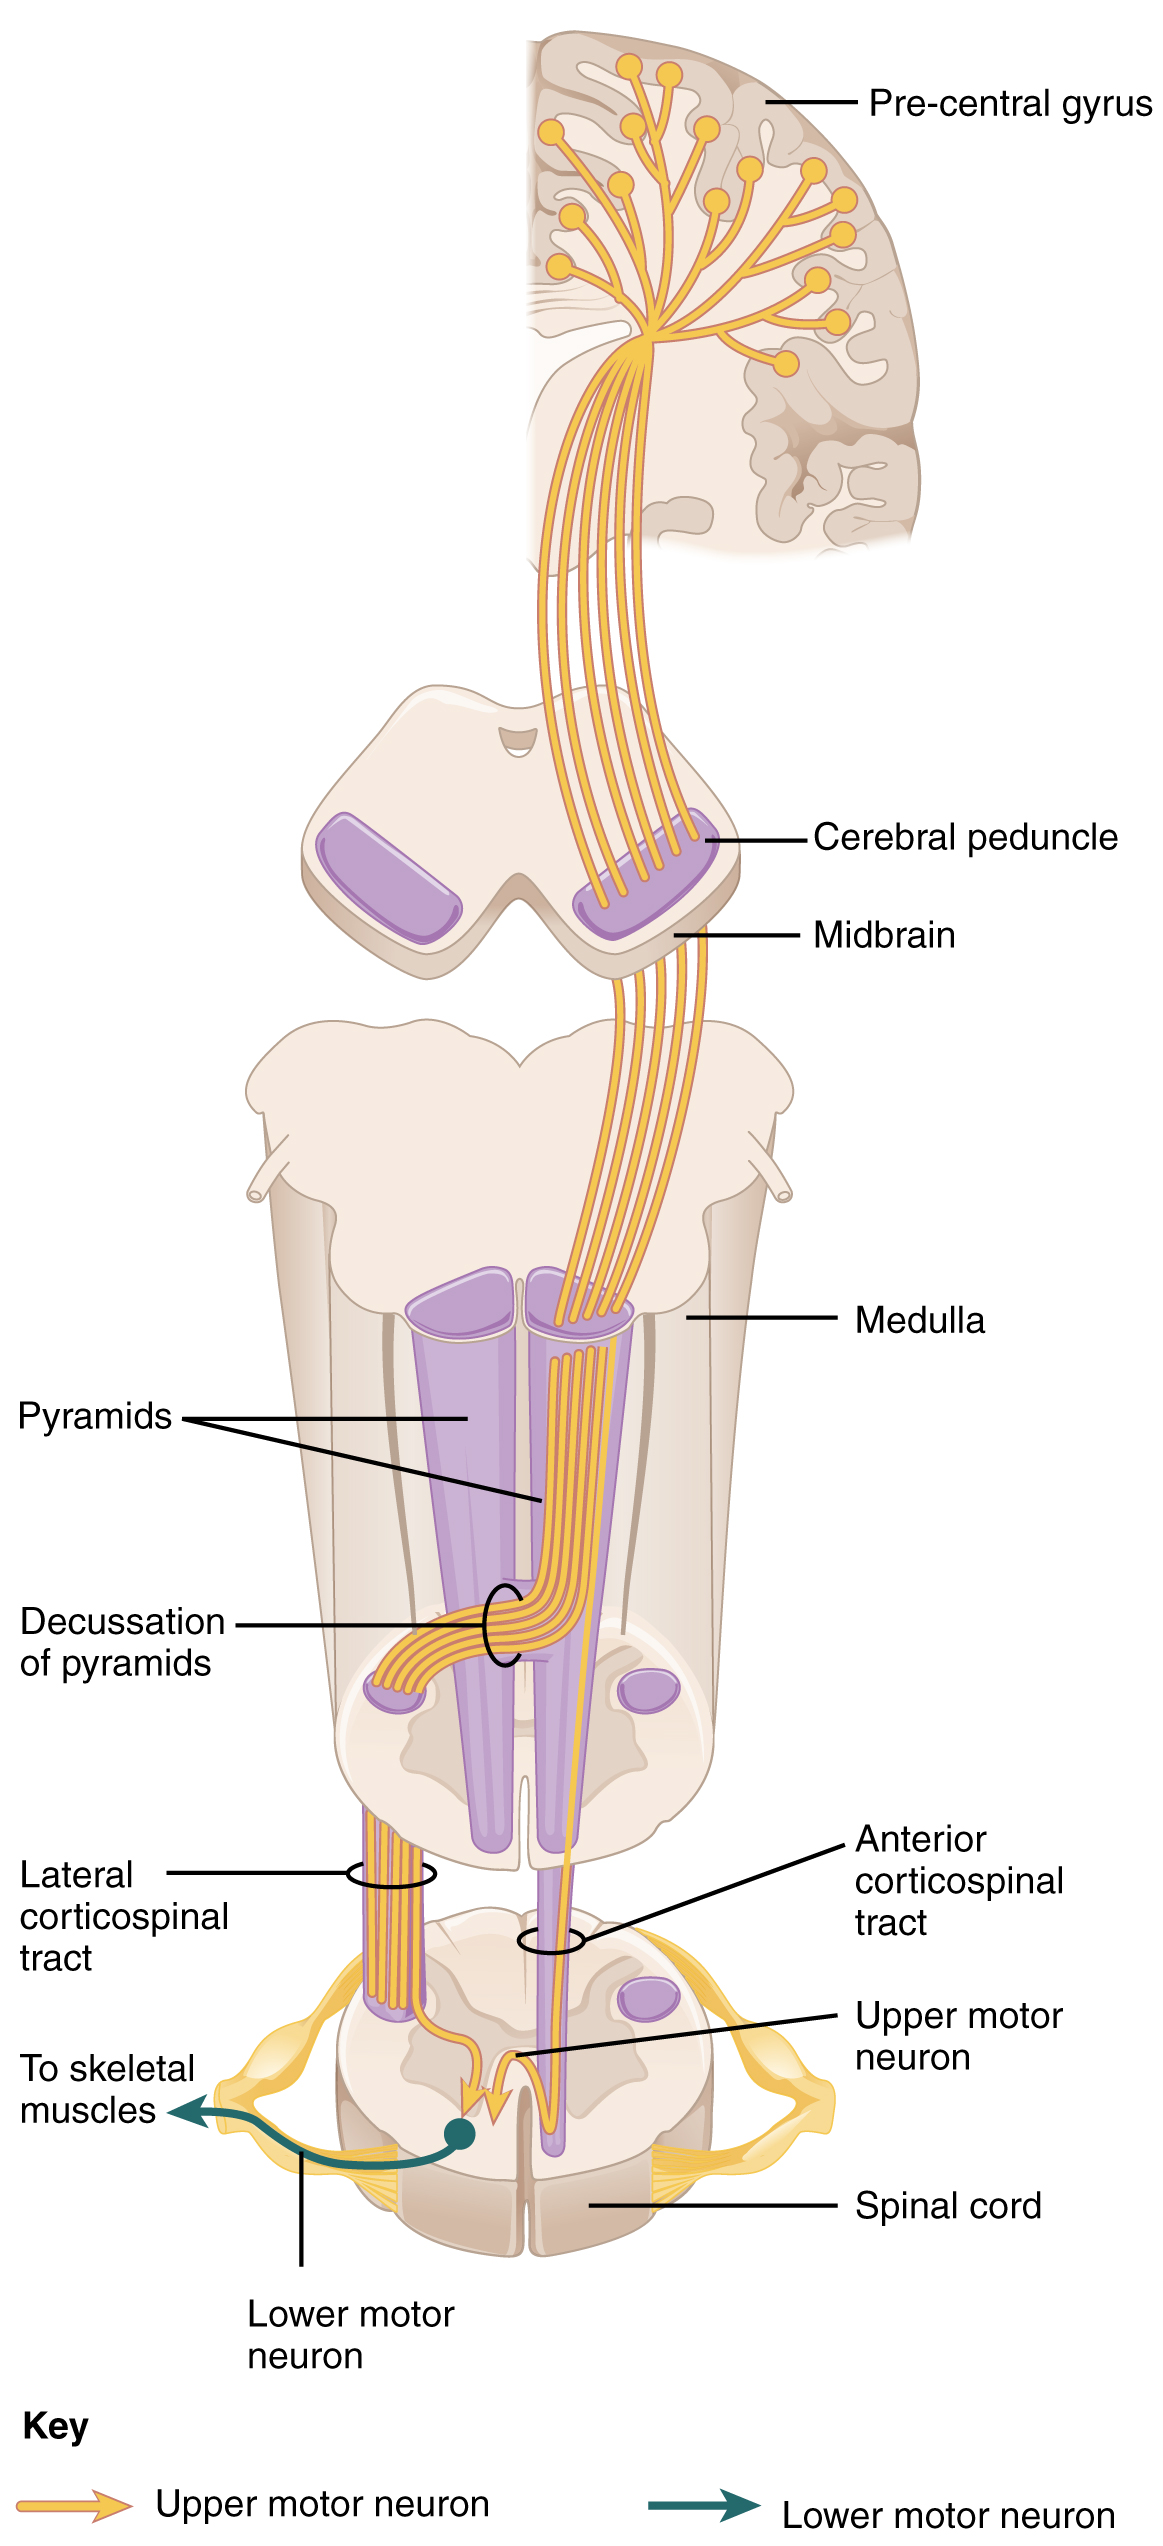 hight resolution of this diagram shows how the motor neurons thread their way through the spinal cord and into